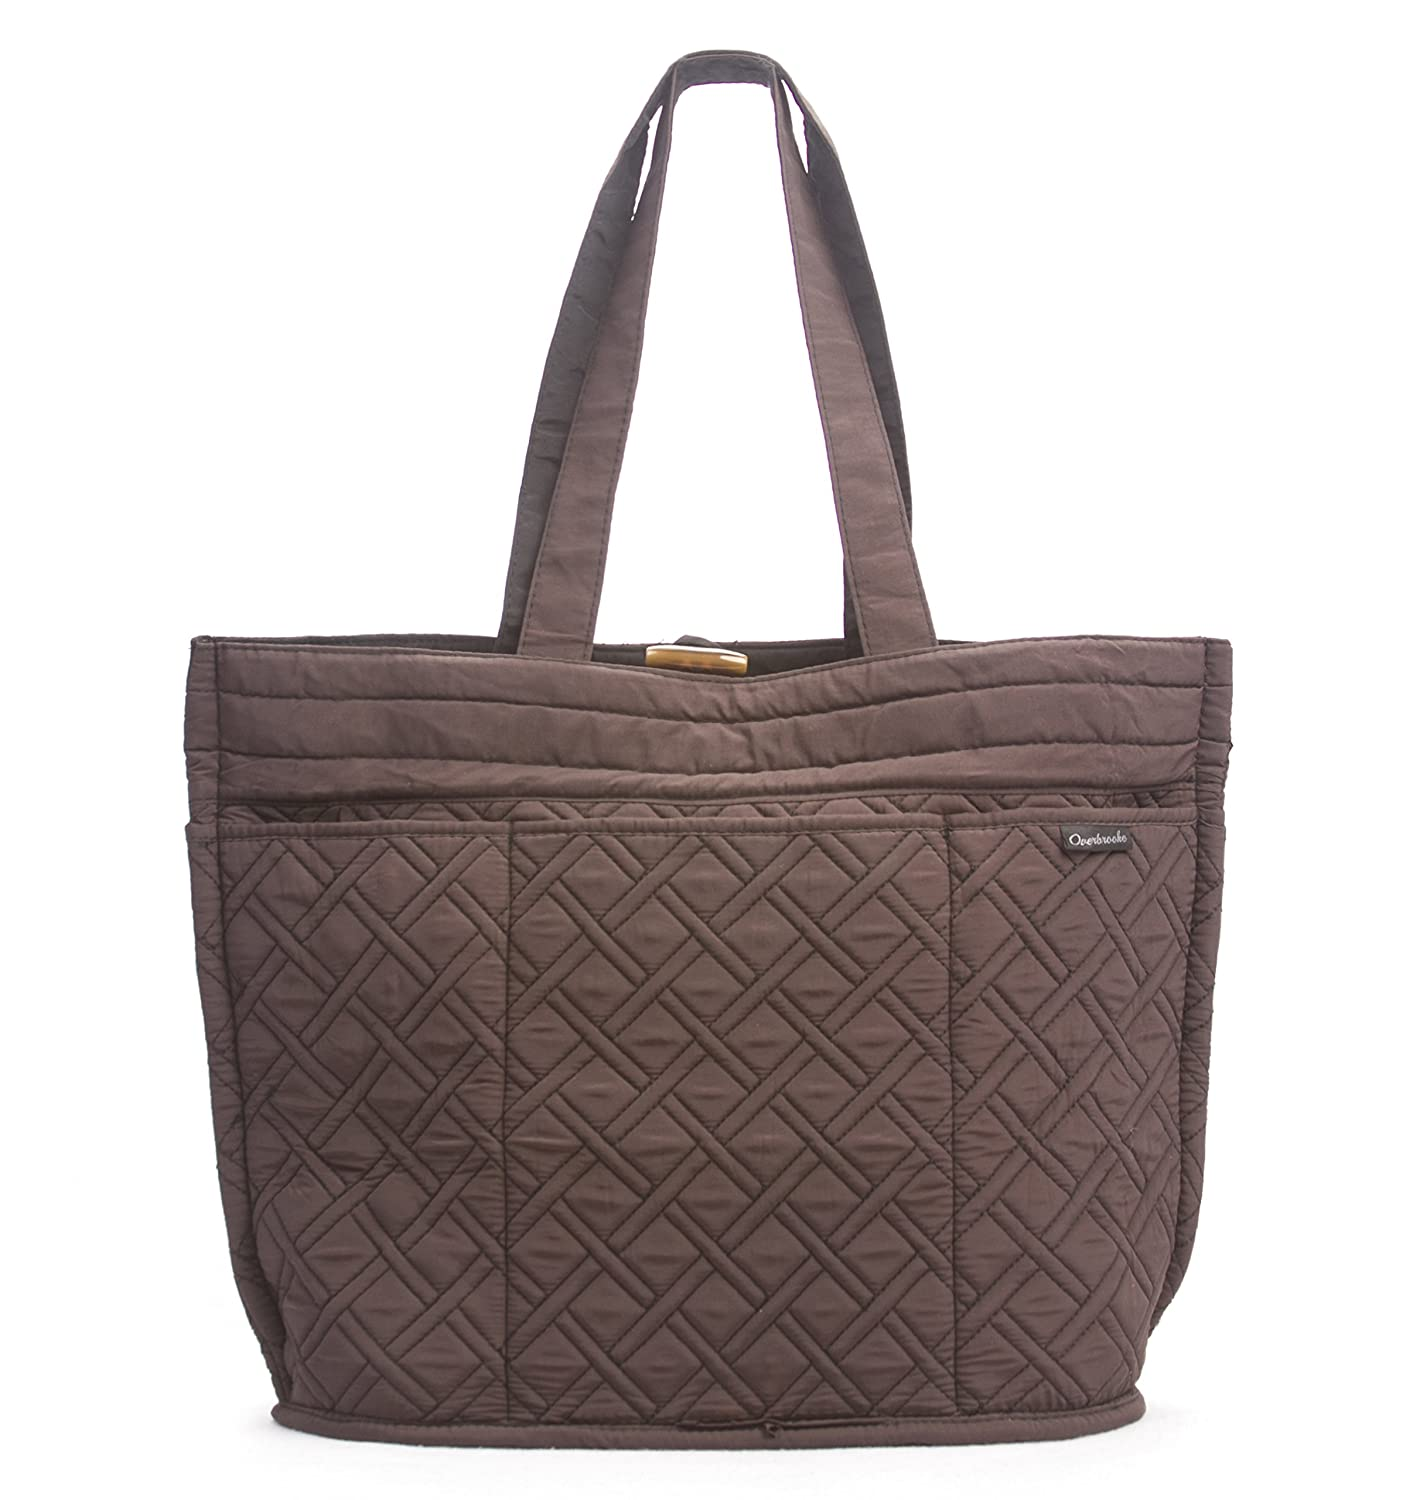 Pursfection Expandable Tote Bag in Quilted Fabric - Dark Brown ... : quilted tote bag - Adamdwight.com